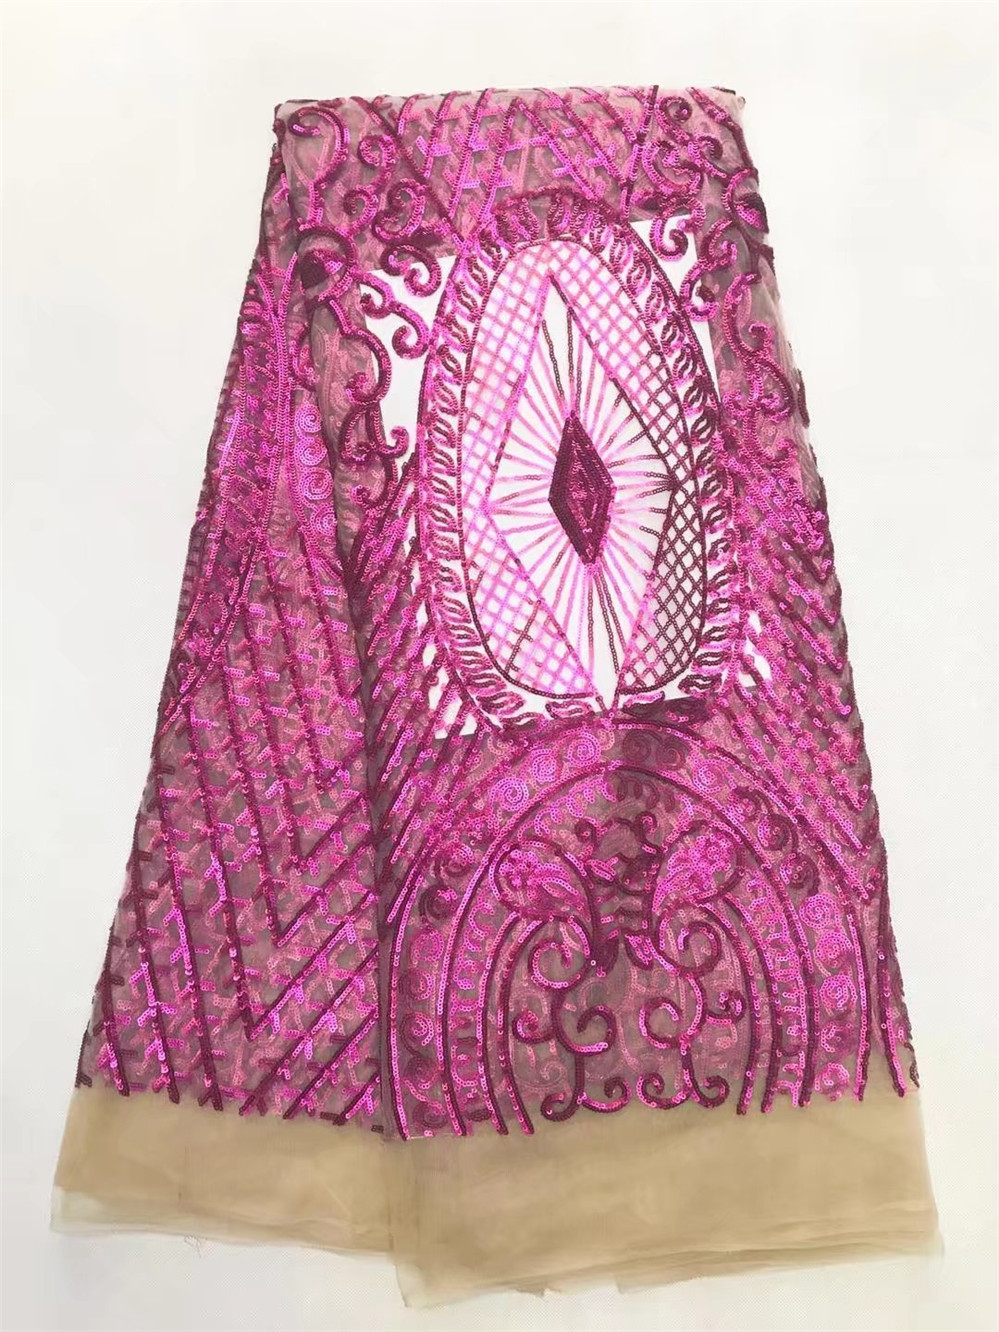 Aliexpress.com : Buy Wholesale African French 3d Lace